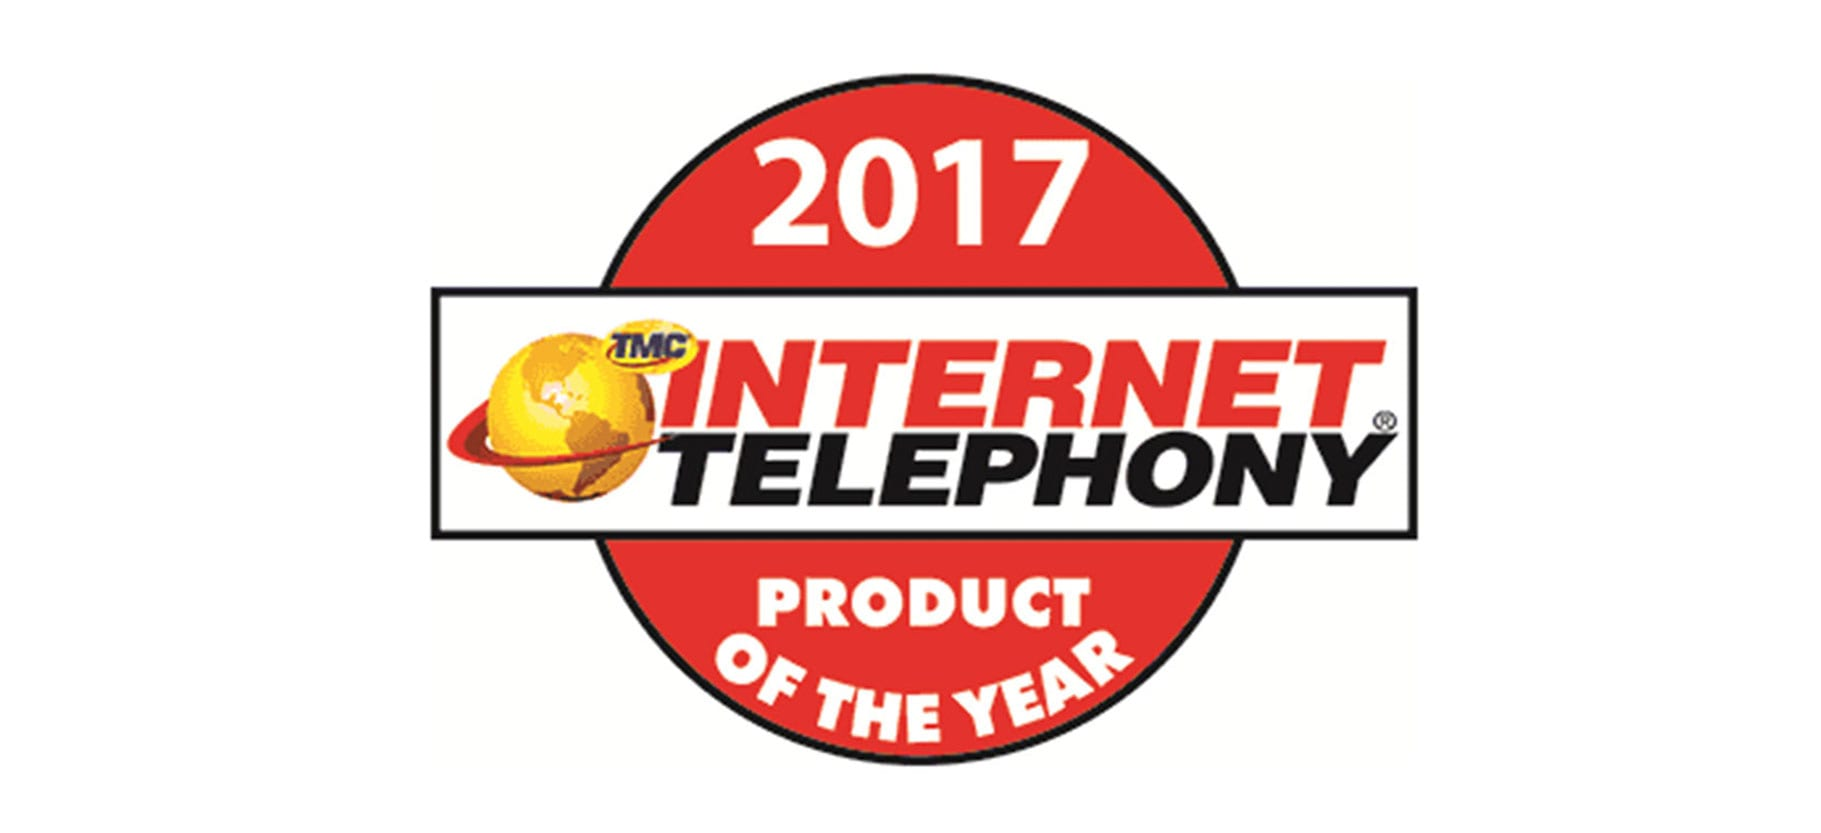 Blueface receives 2017 Internet Telephony Product of the Year Award